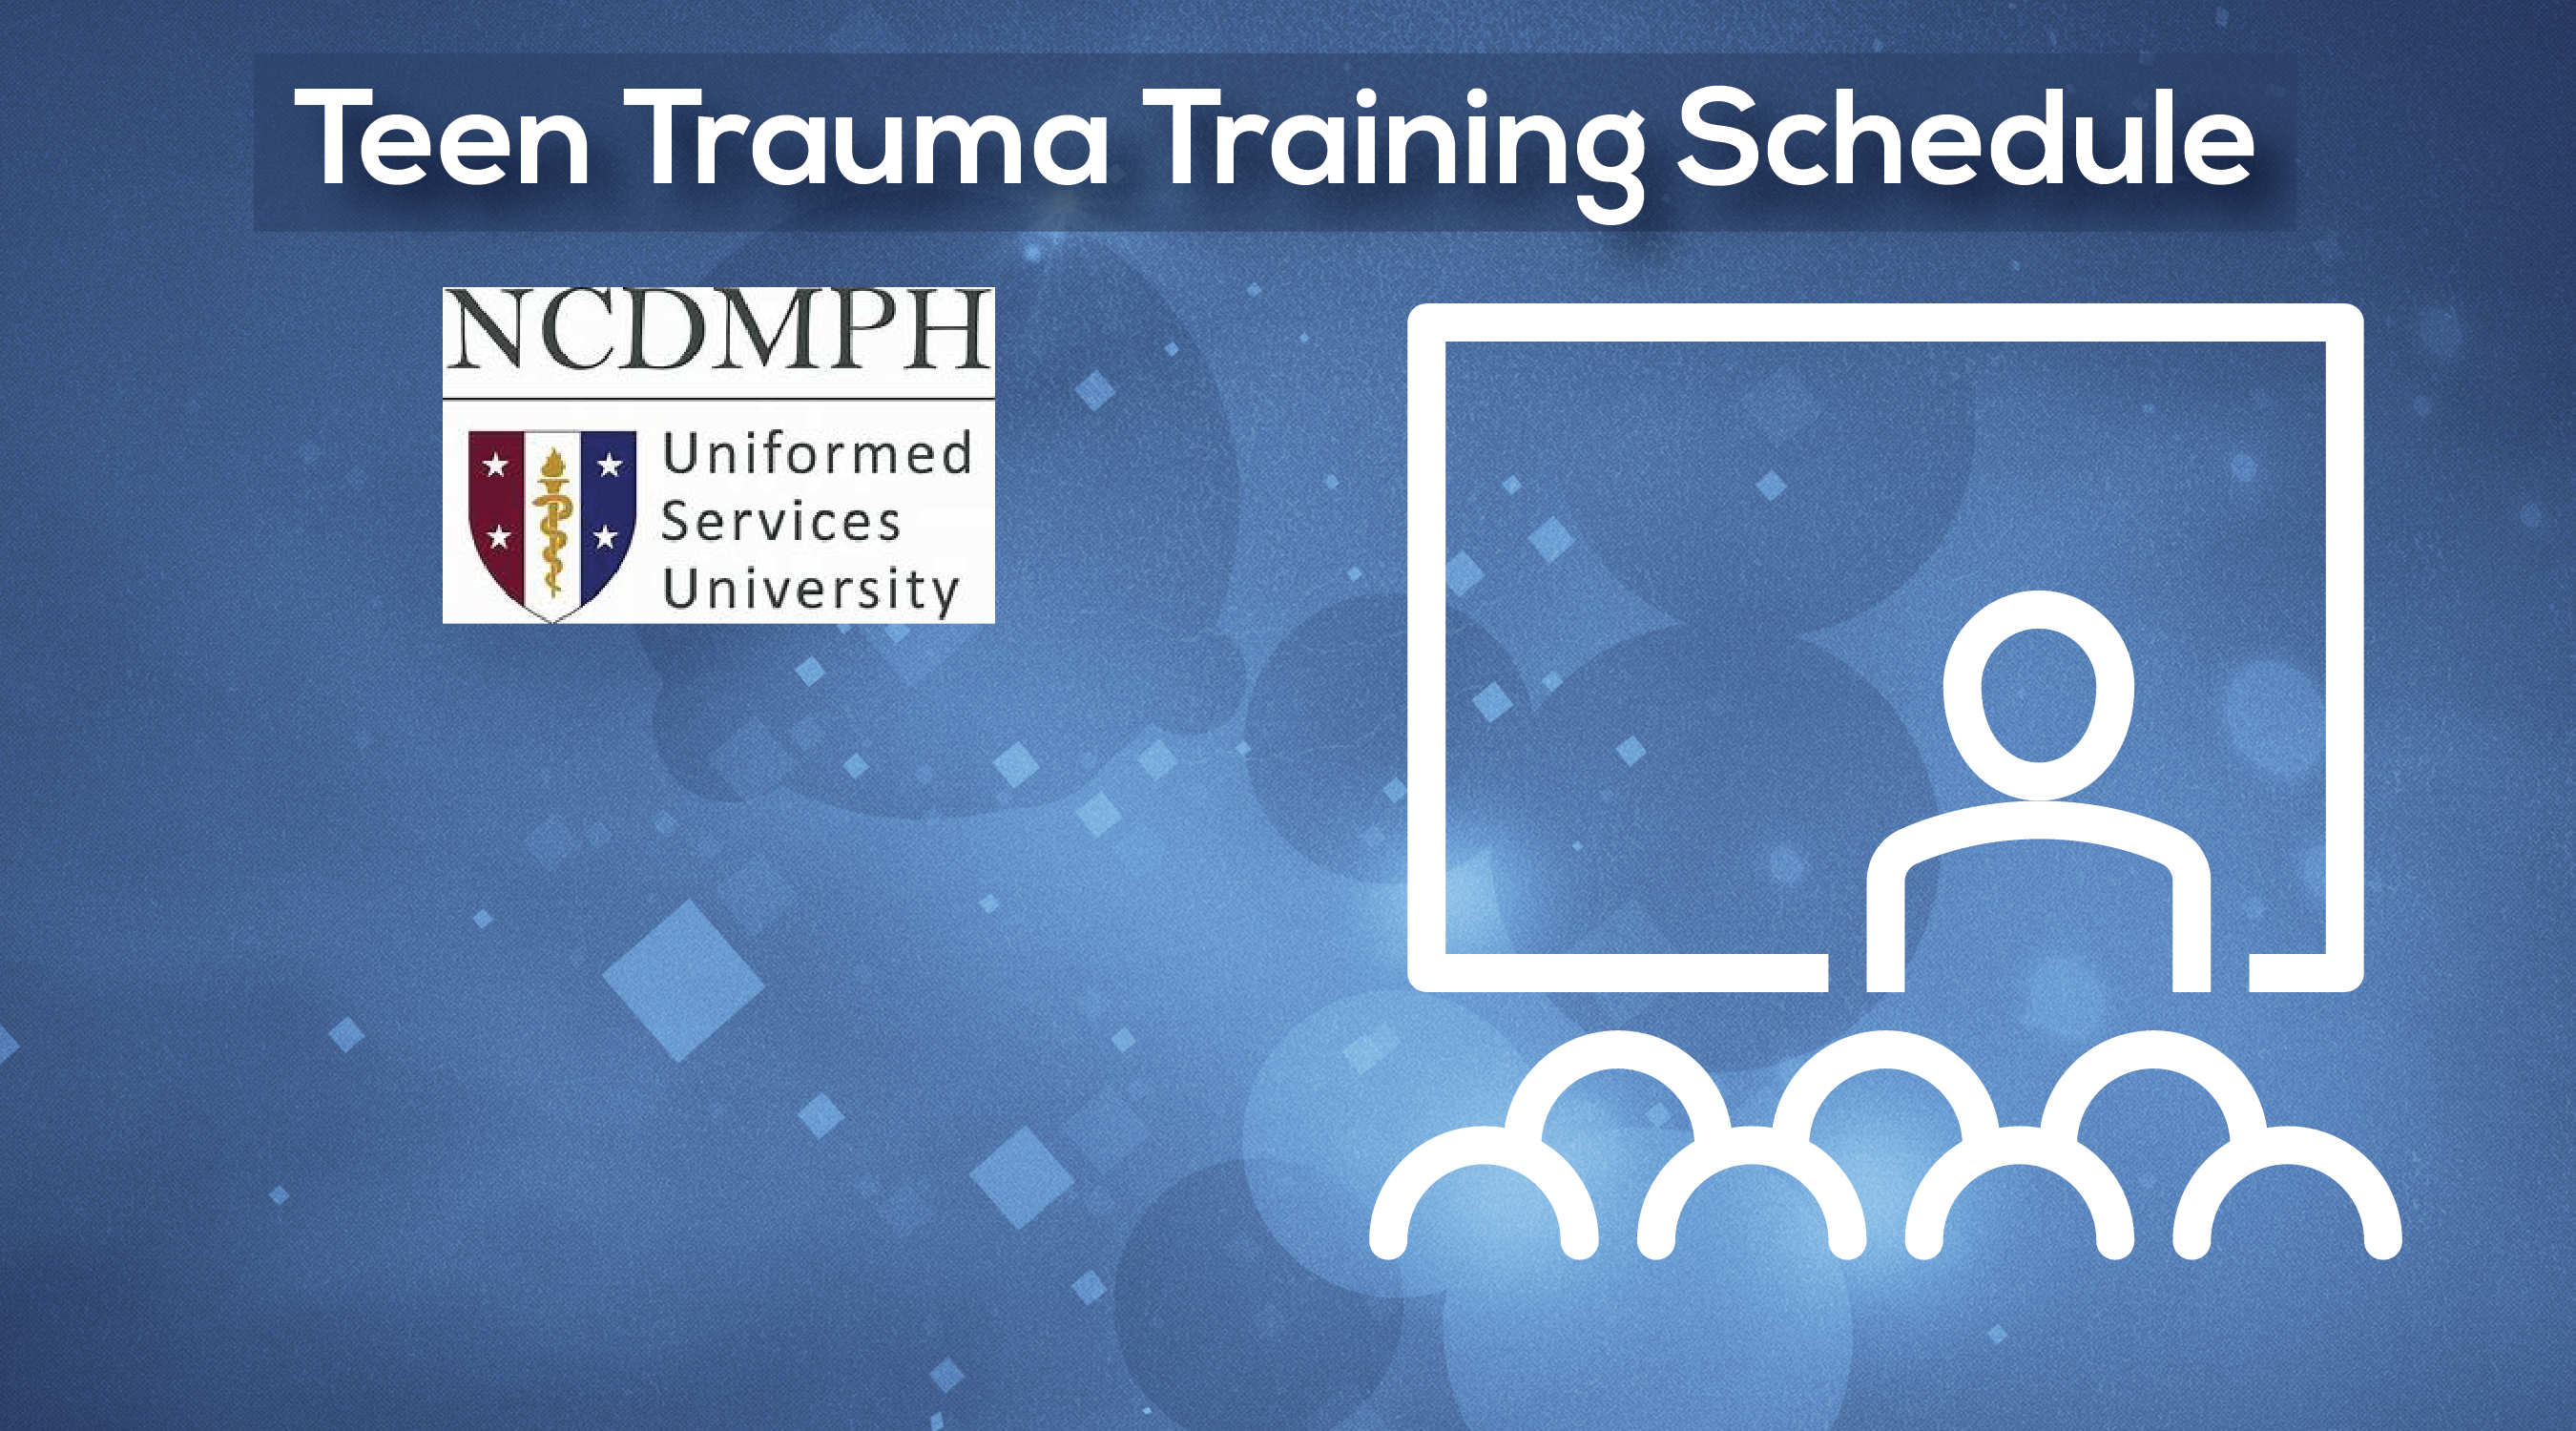 Teen Trauma Training Schedule (Stop the Bleed)